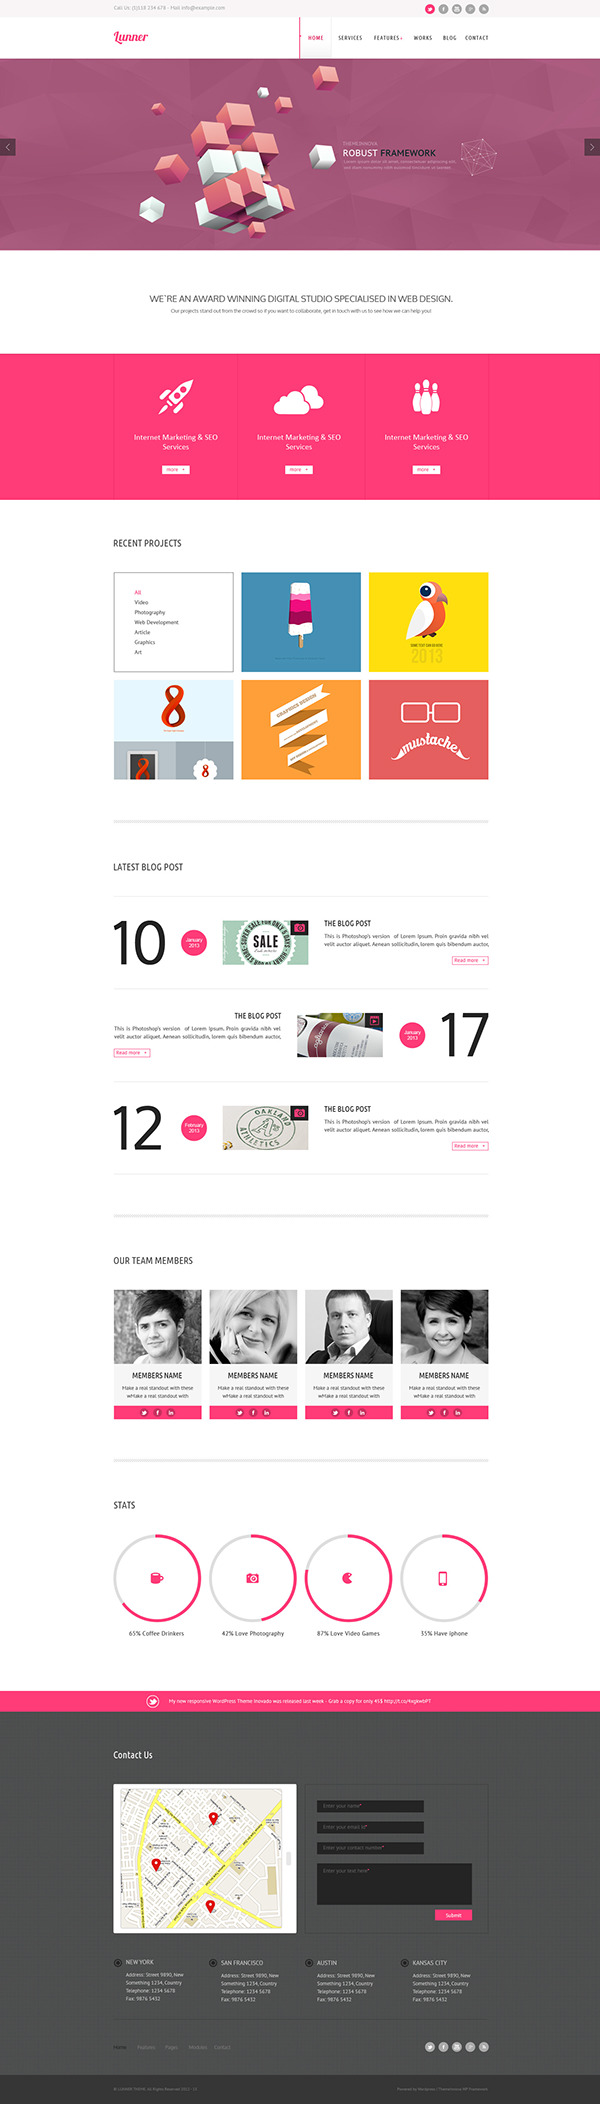 lunner one page portfolio template on behance